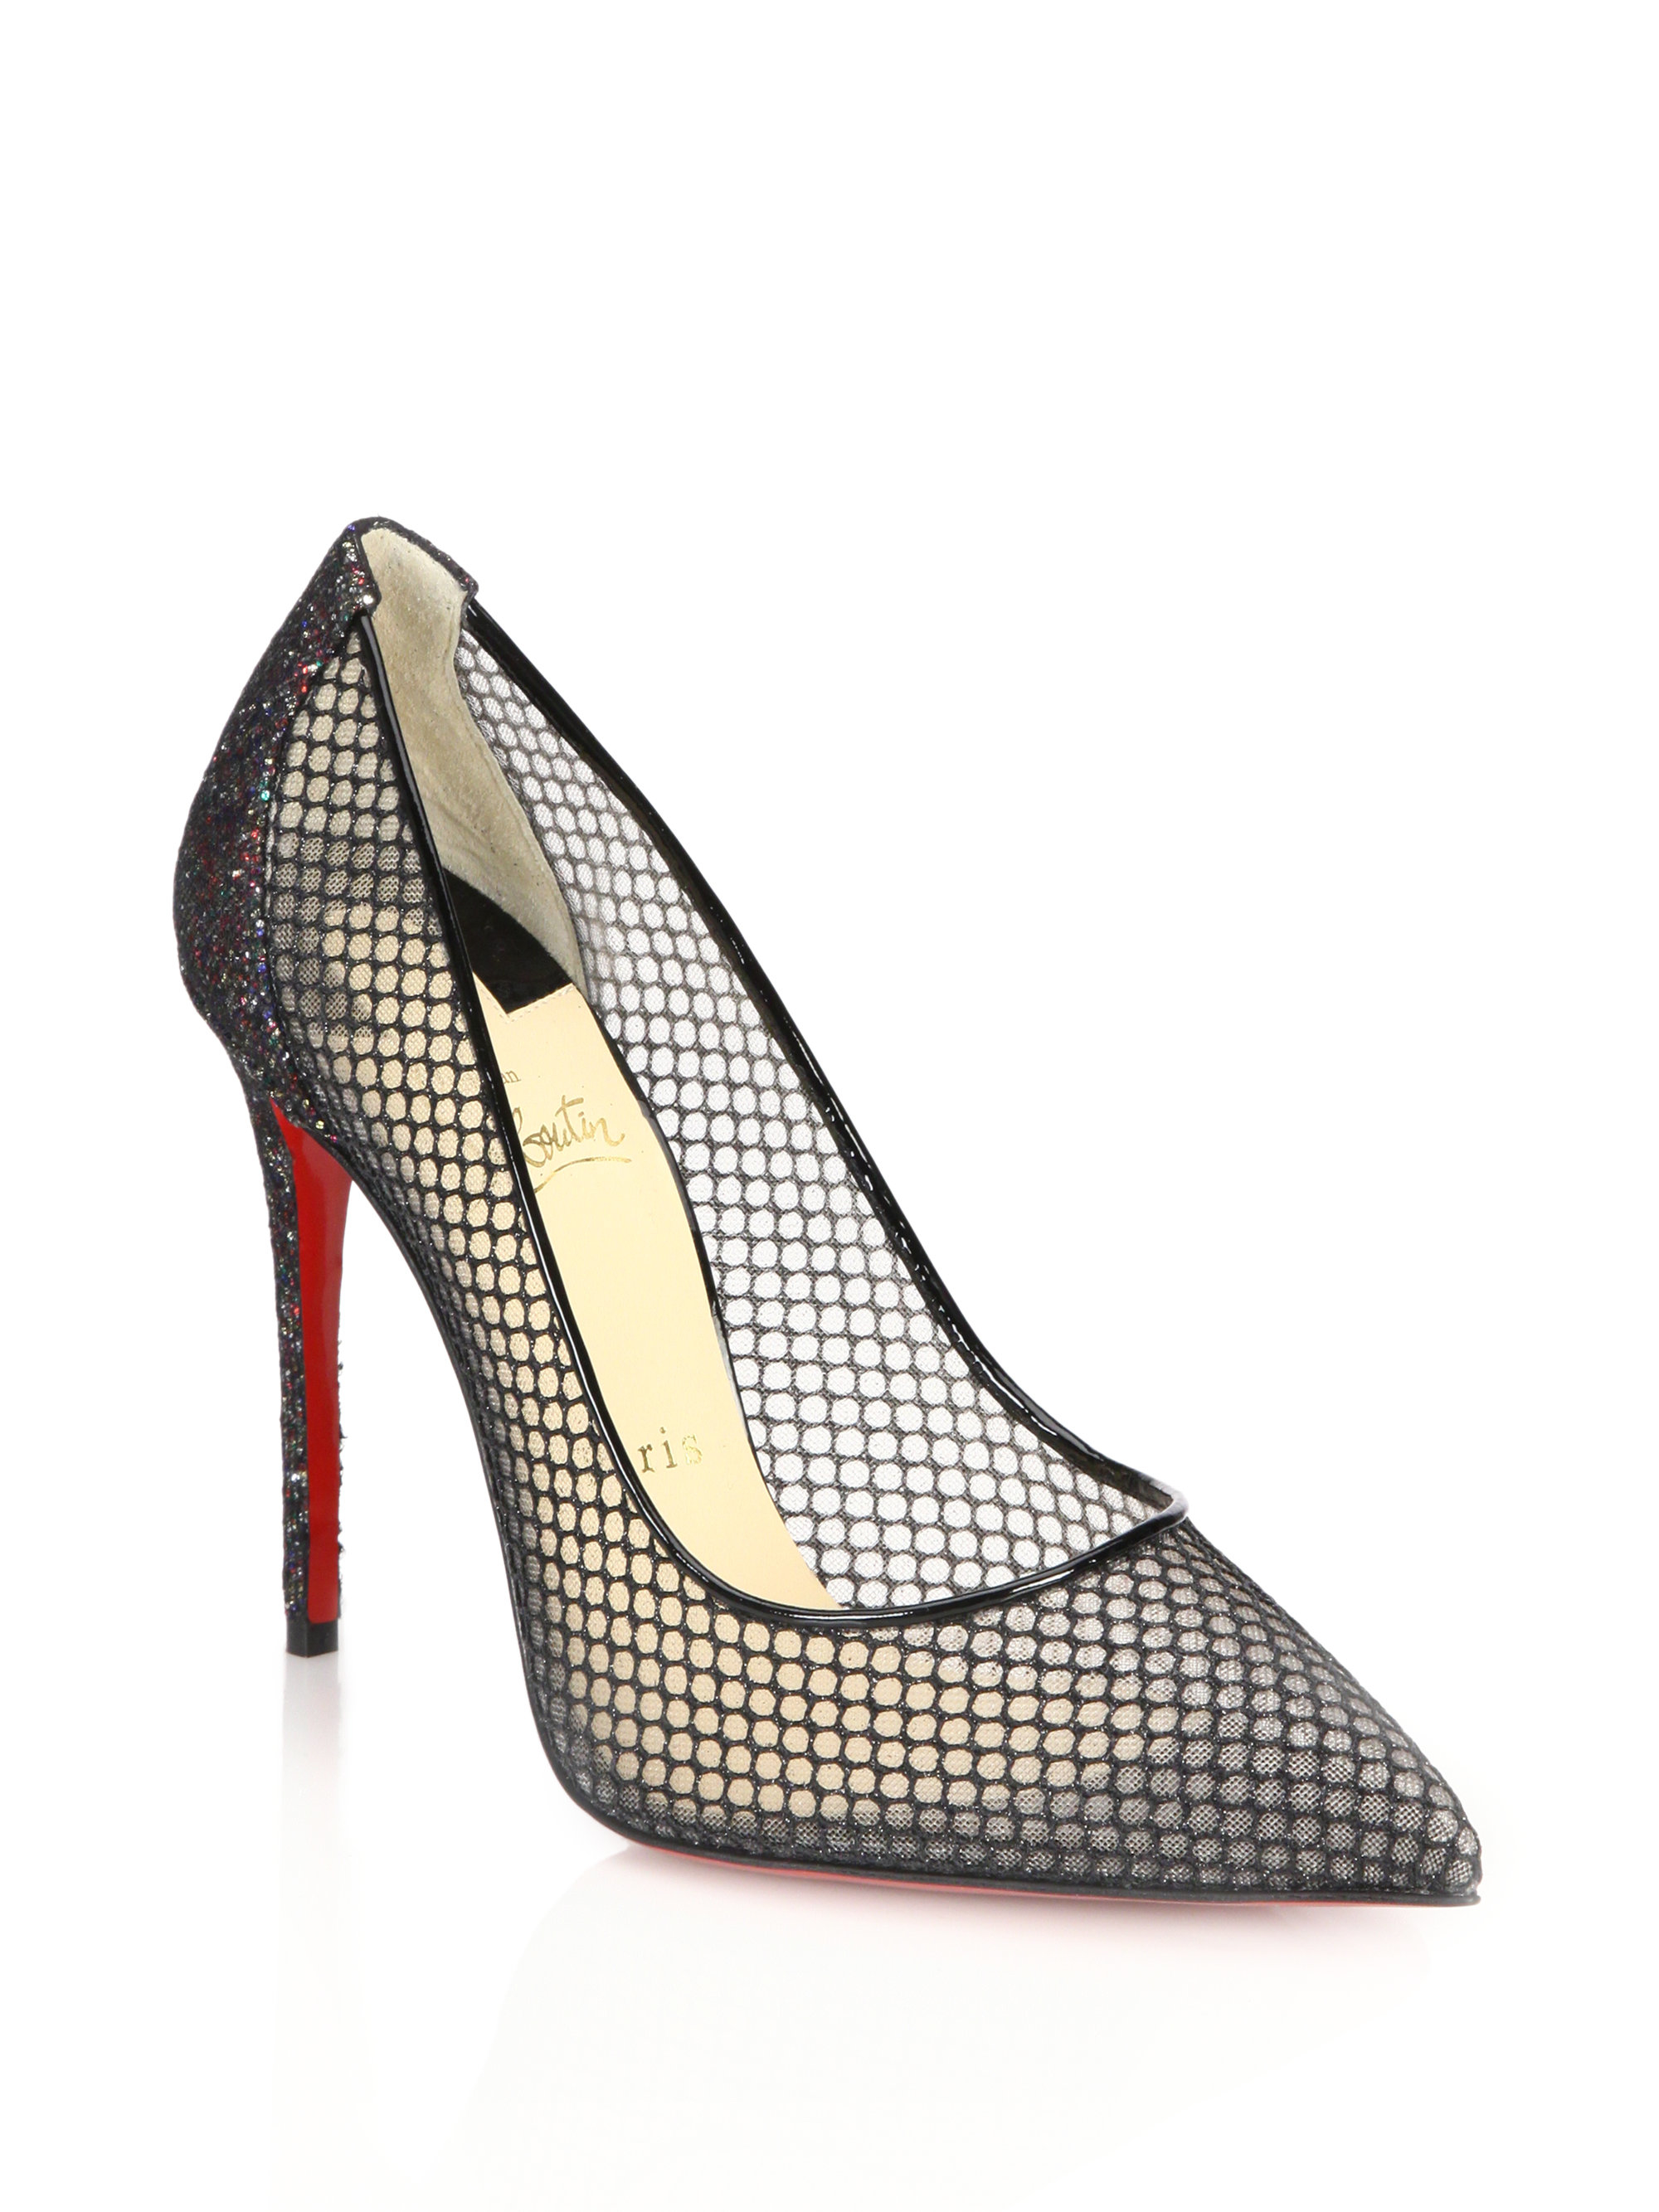 13999cd38191 Lyst - Christian Louboutin Glitter Mesh and Leather Pumps in Black